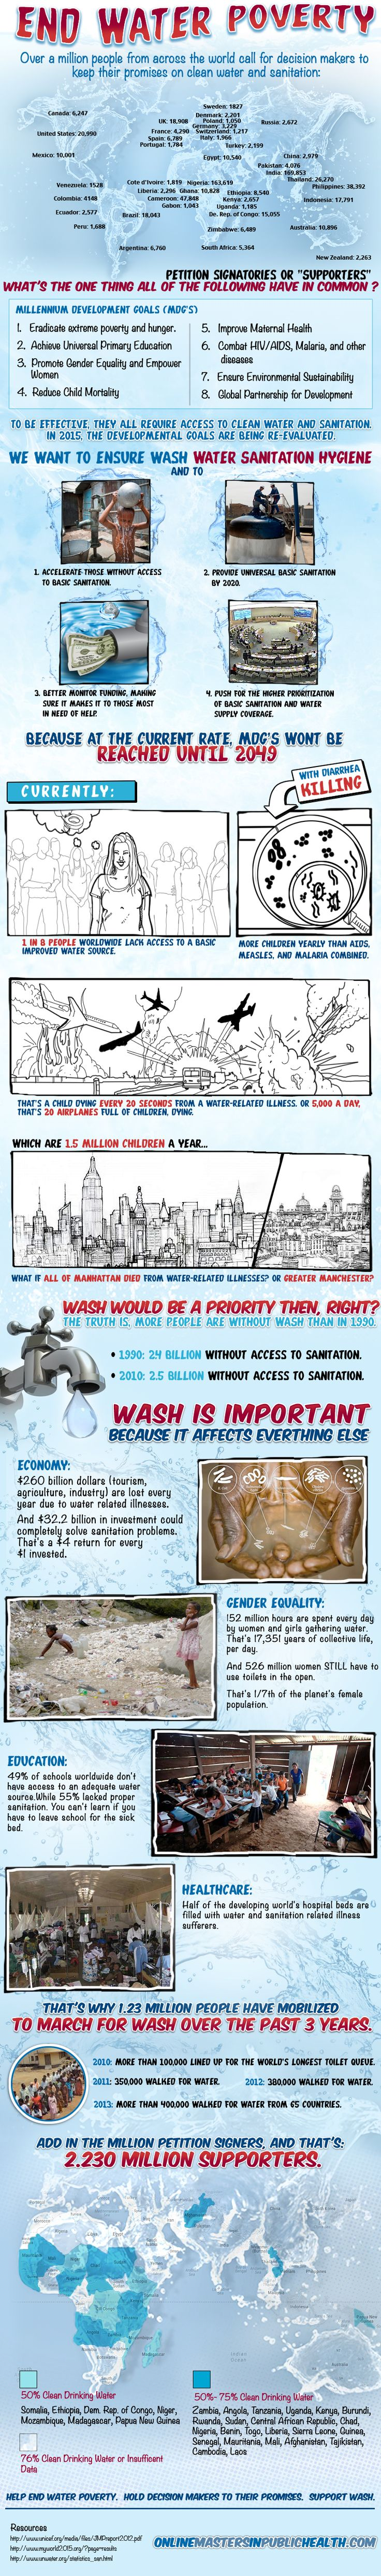 End Water Poverty {infographic}